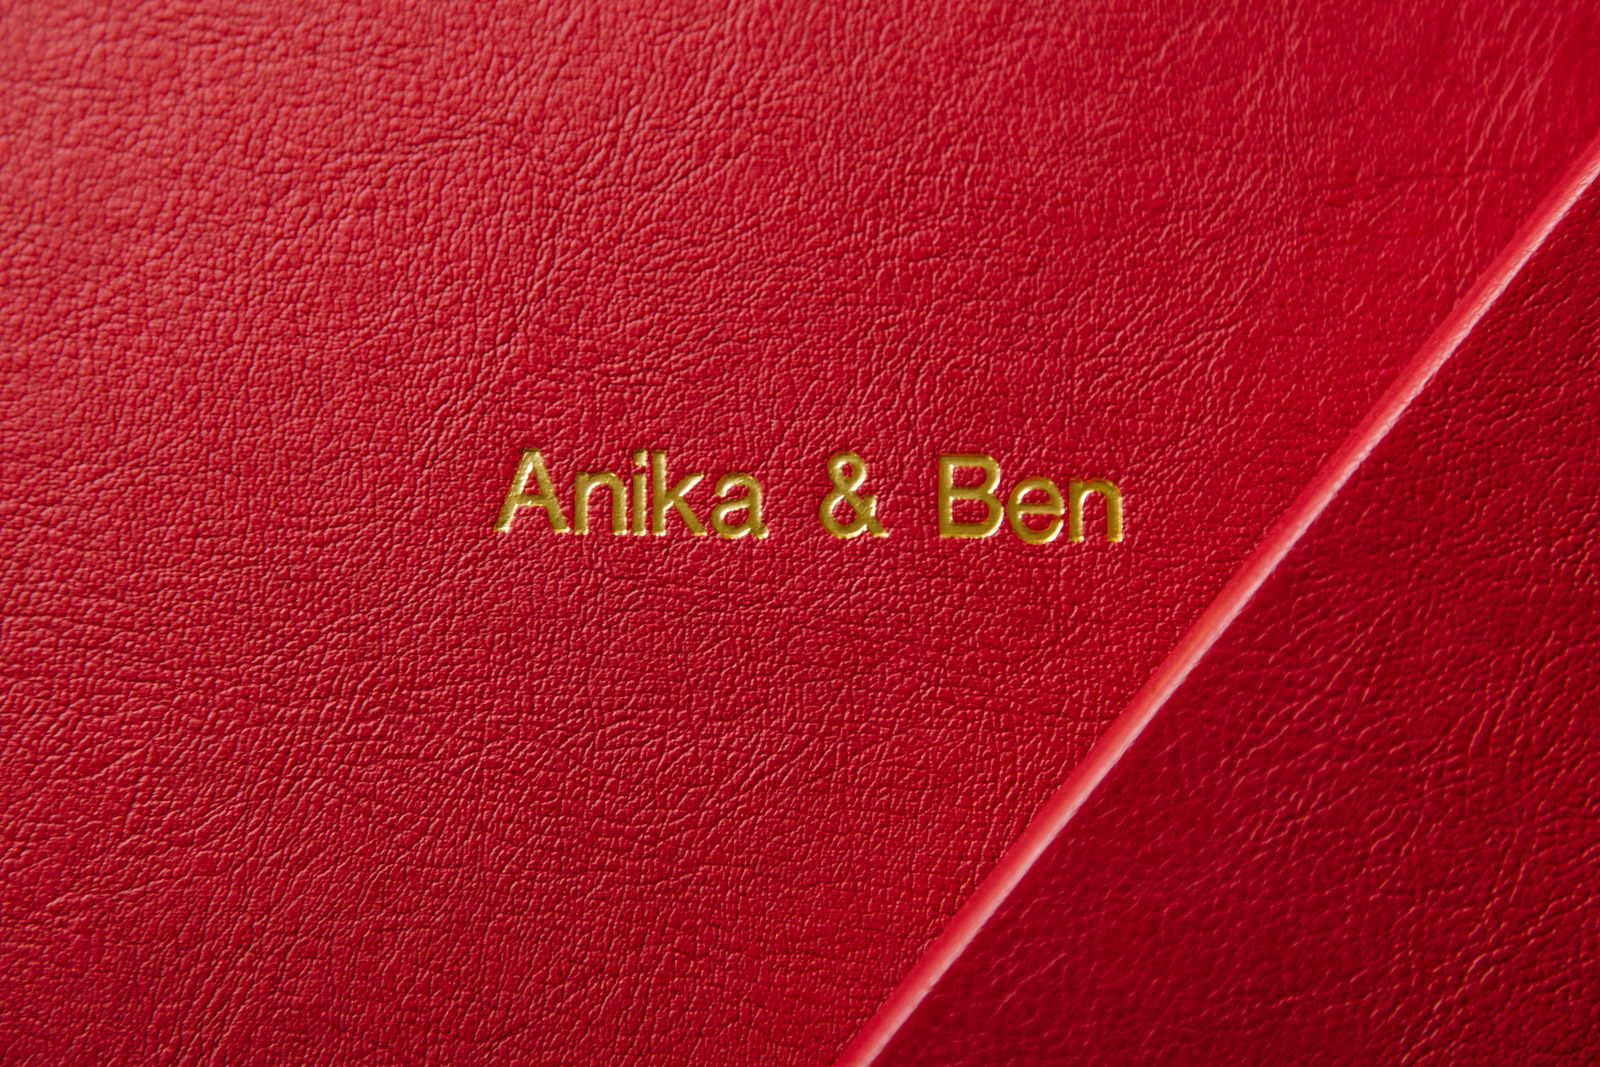 Wedding-Album-Red-0010.jpg